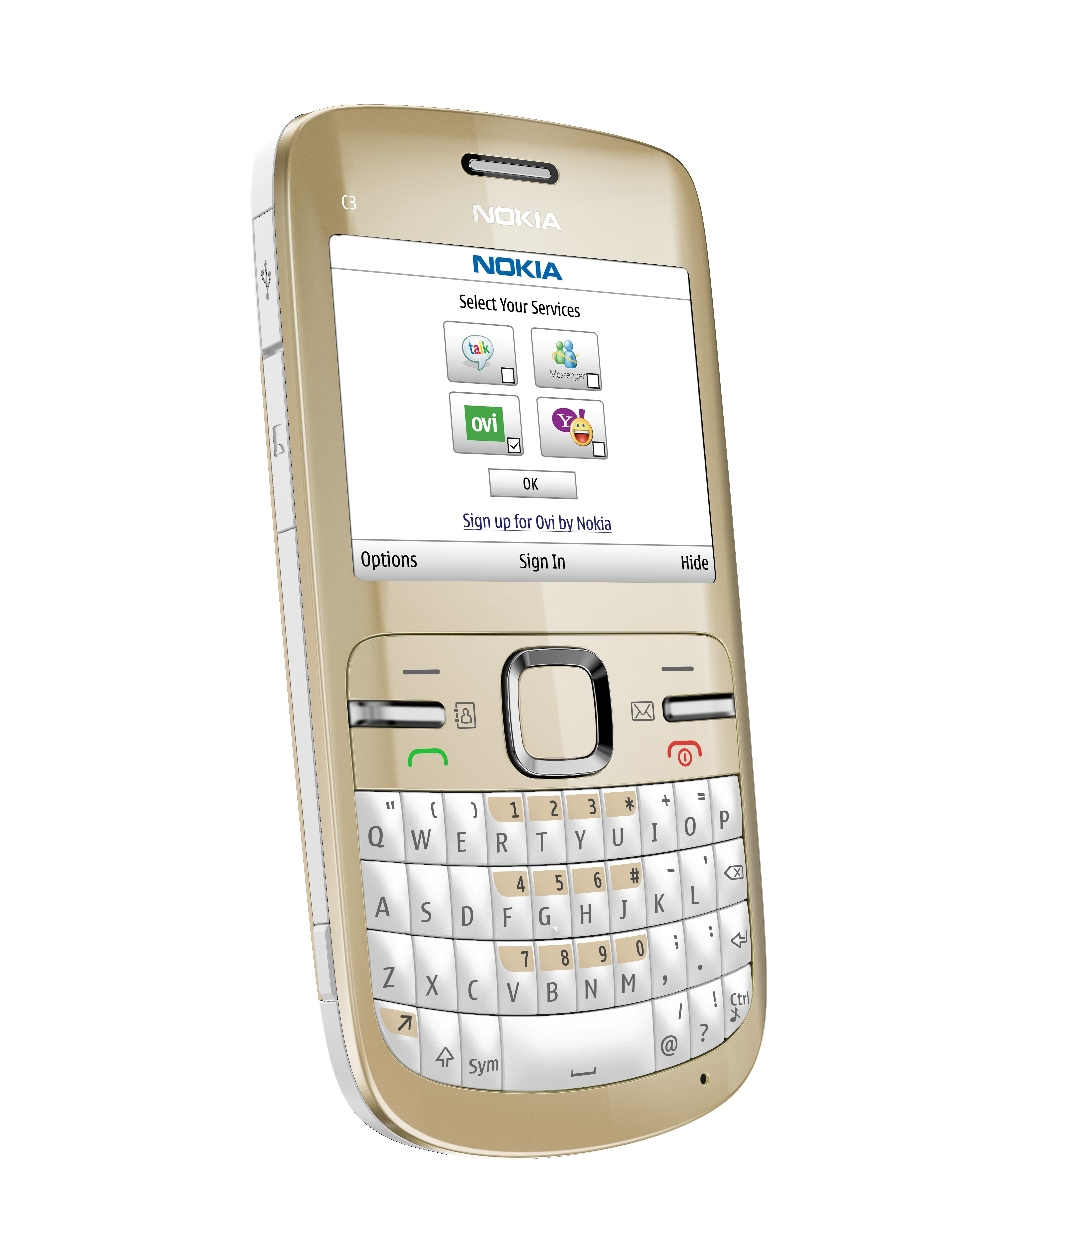 wallpaper: Wallpaper Nokia c5 3